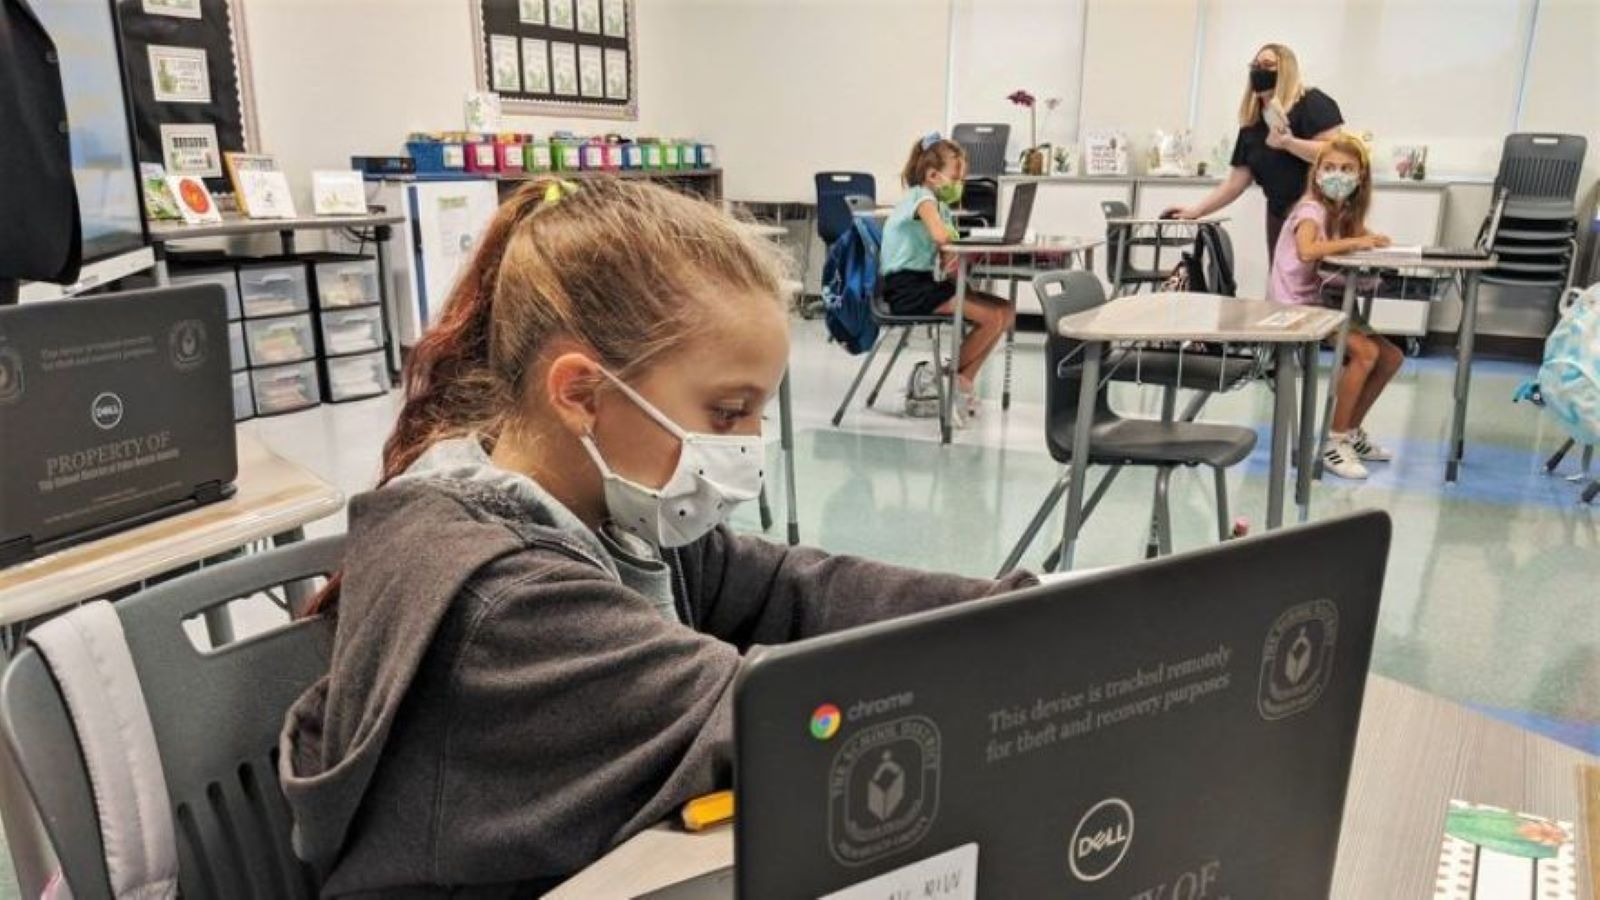 Palm Beach County students returned to in-person classes Sept. 21, 2020, including at the new Verde K-8 in Boca Raton. (Palm Beach County School District/Palm Beach County School District)